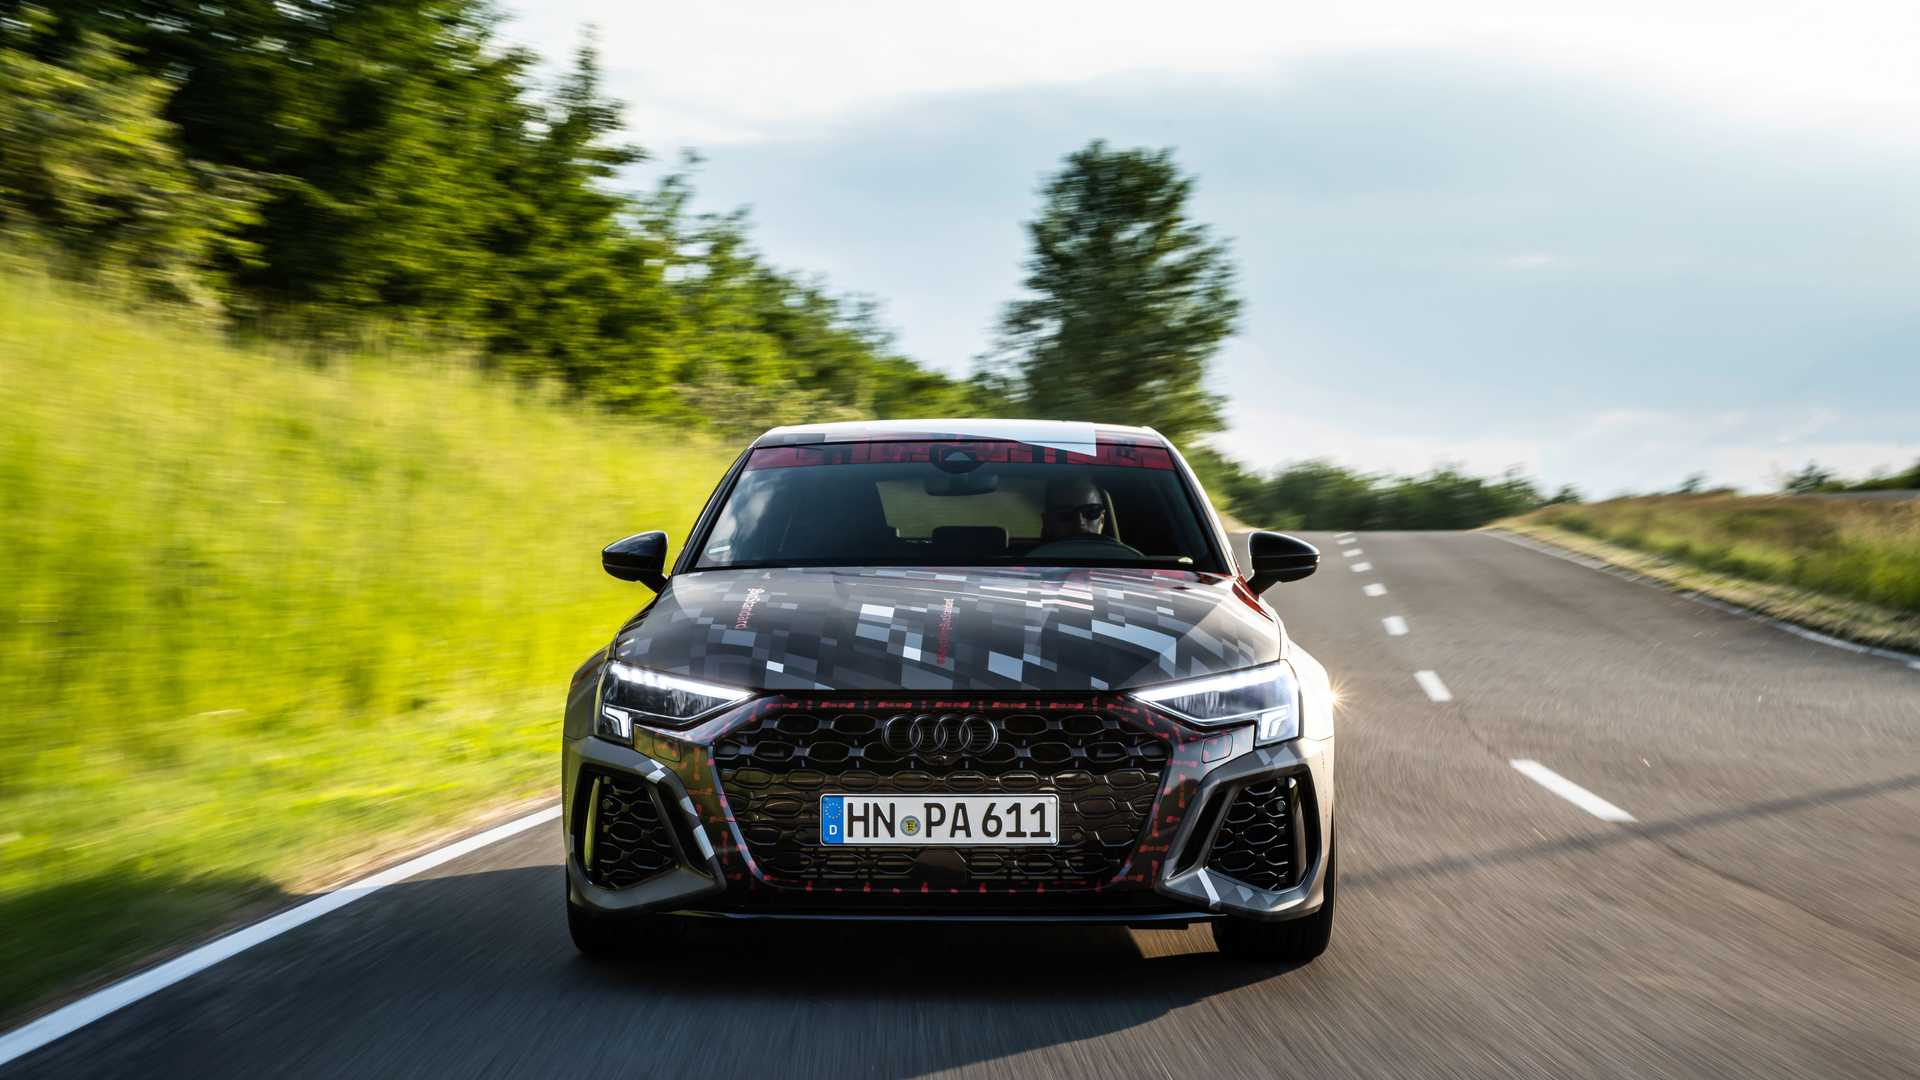 2022-audi-rs3-sportback-front-view-3